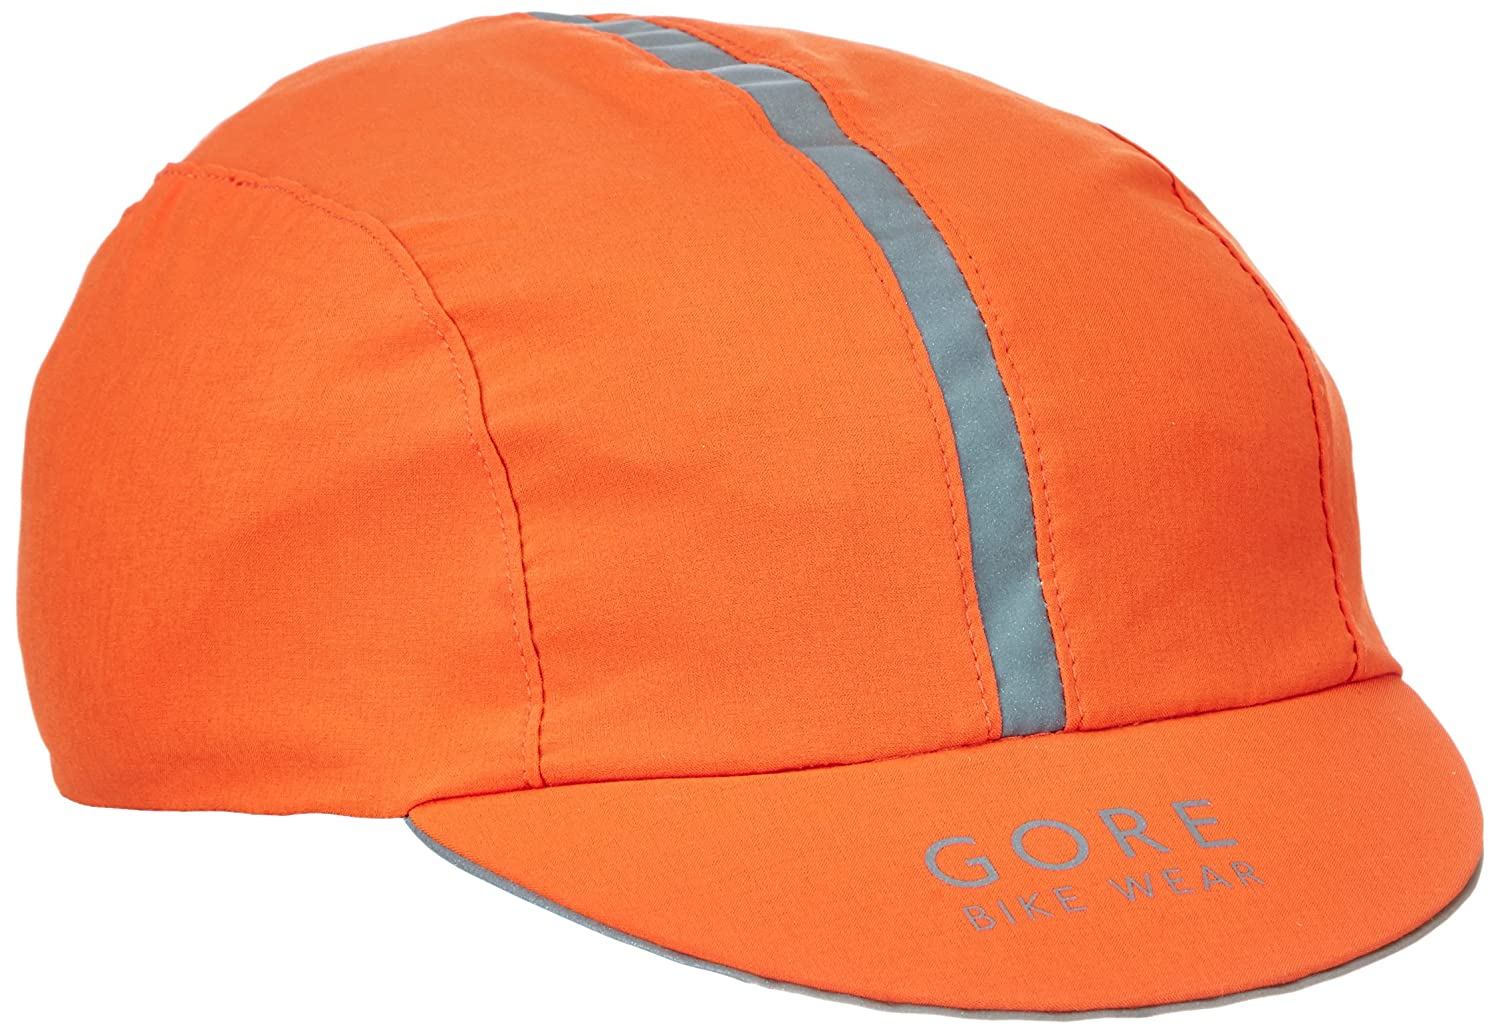 Gore Wear Equipe Light, Cappello Uomo, Arancione, Taglia Unica Gore Bike Wear HEQUIP